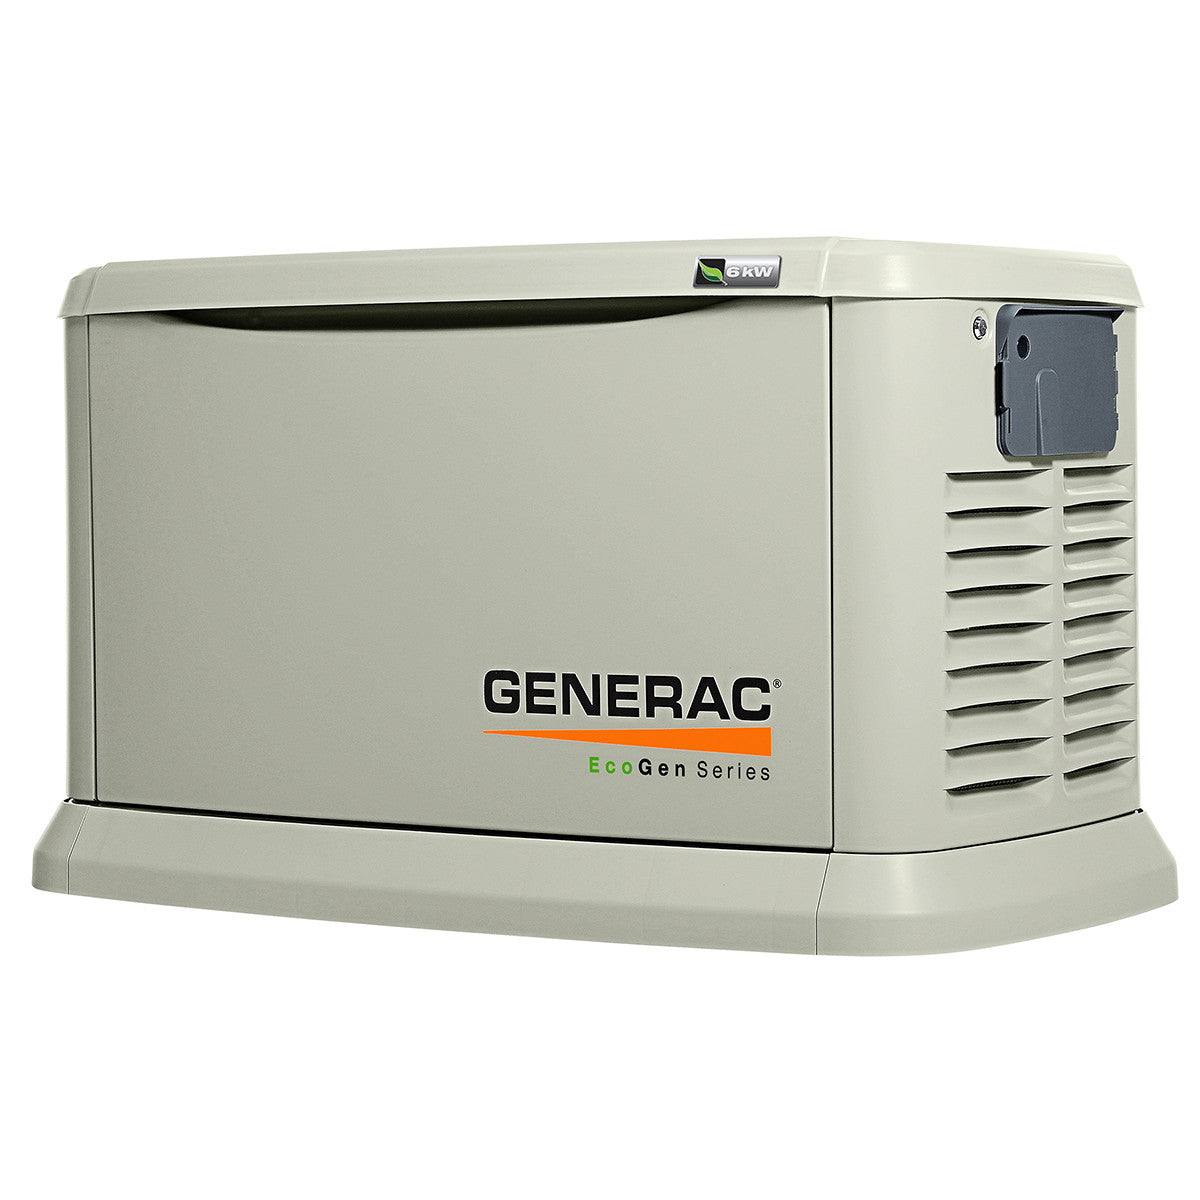 5818 Generac EcoGen 6kW Steel LP Air Cooled Standby Power Generator  (Discontinued)